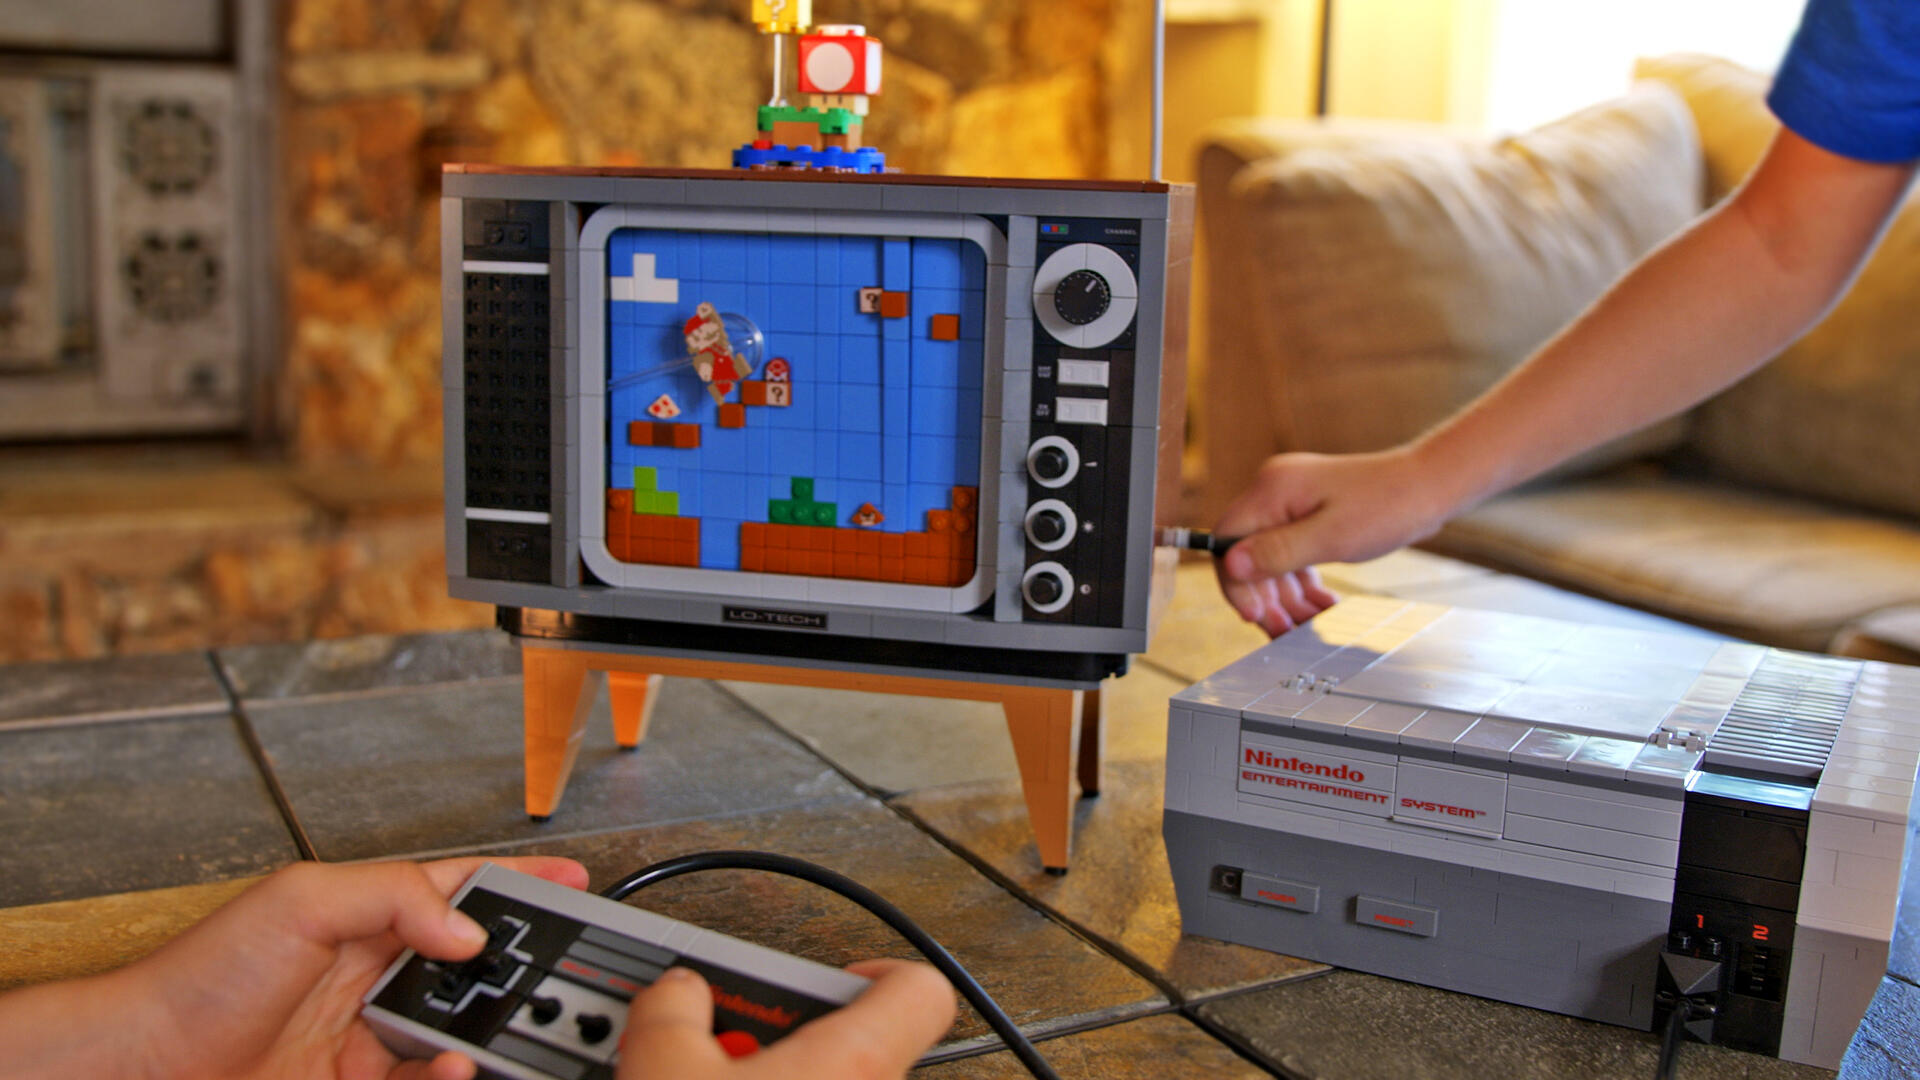 Video: We built the Lego Nintendo Entertainment System. How long did it take?